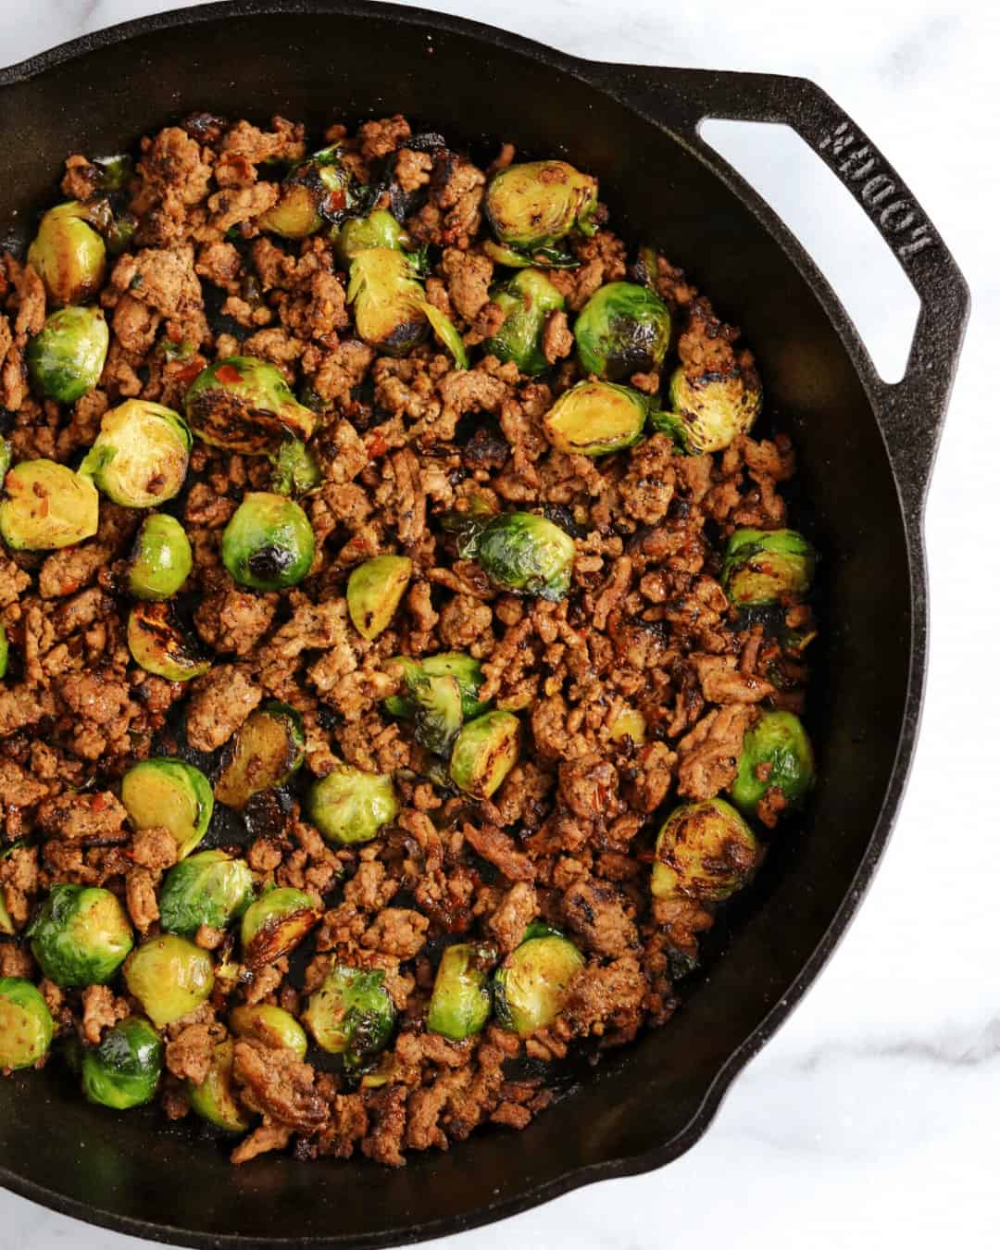 20-Minute Sweet Chili Ground Beef and Brussels Sprouts Skillet